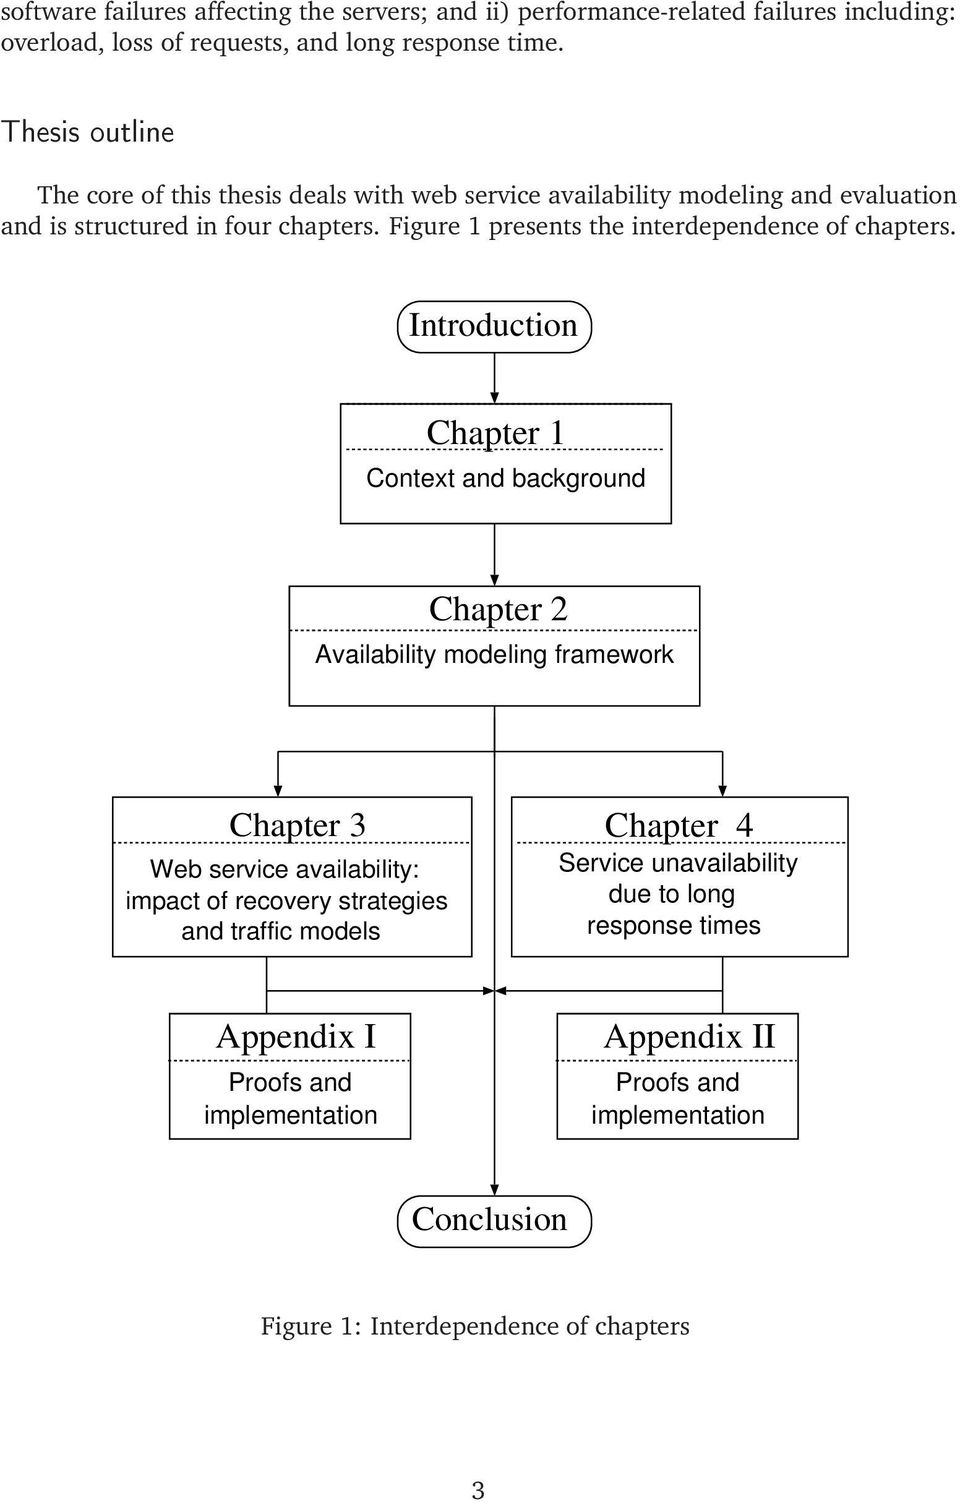 Figure 1 presents the interdependence of chapters.